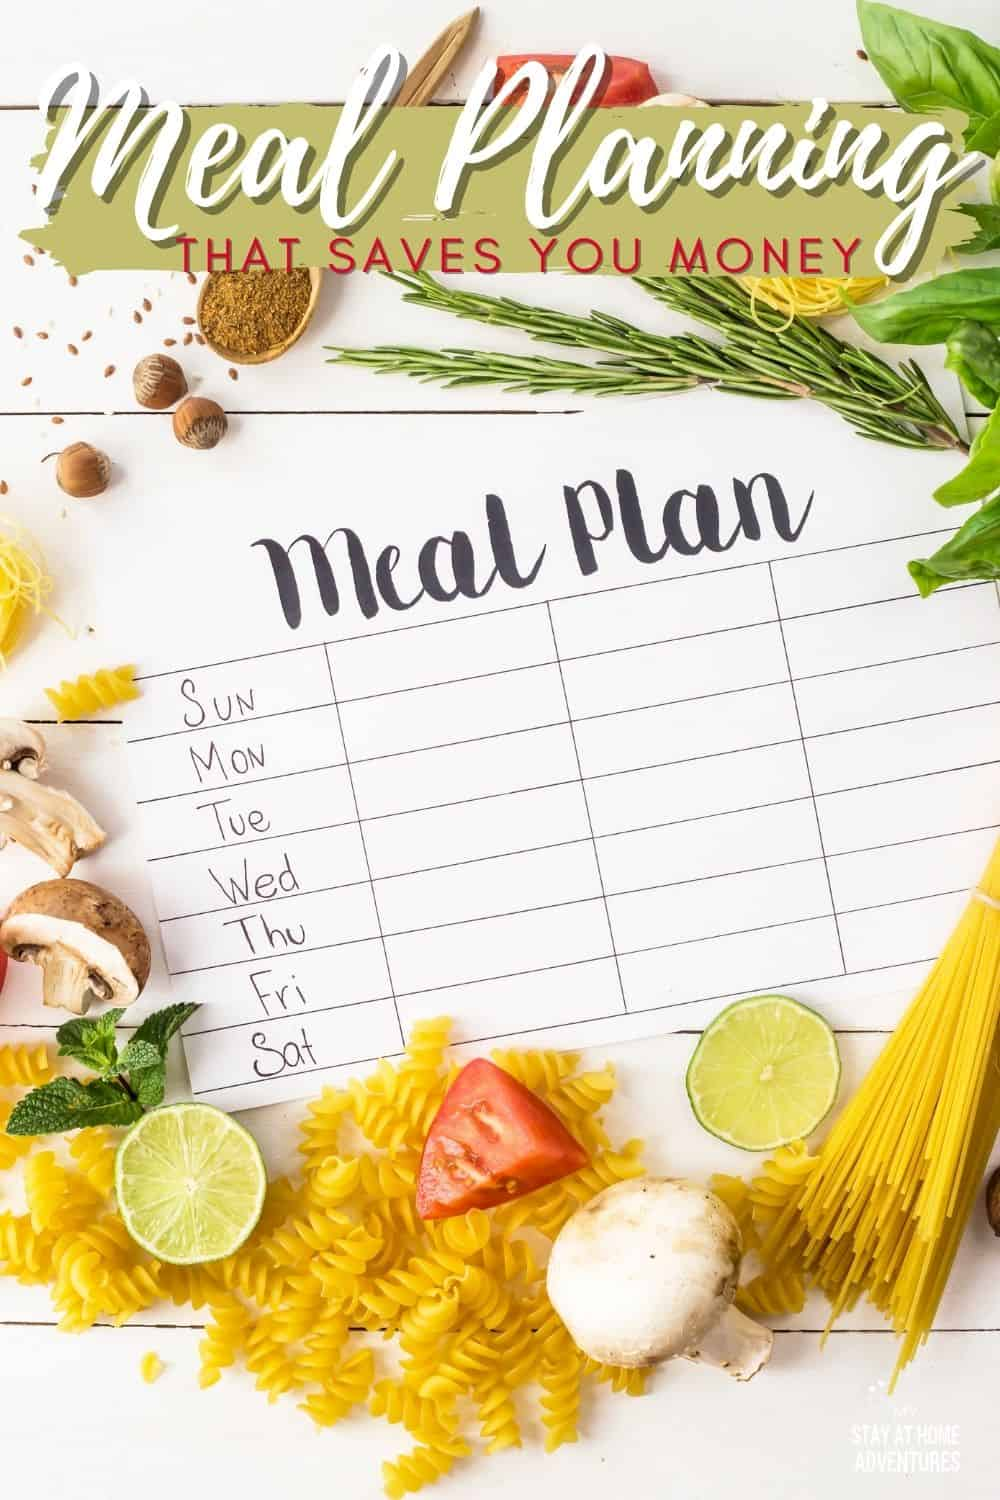 Anyone can create a meal plan, but can you create a meal plan that saves you money in one week? Learn how to create a meal plan to save you time and money. via @mystayathome